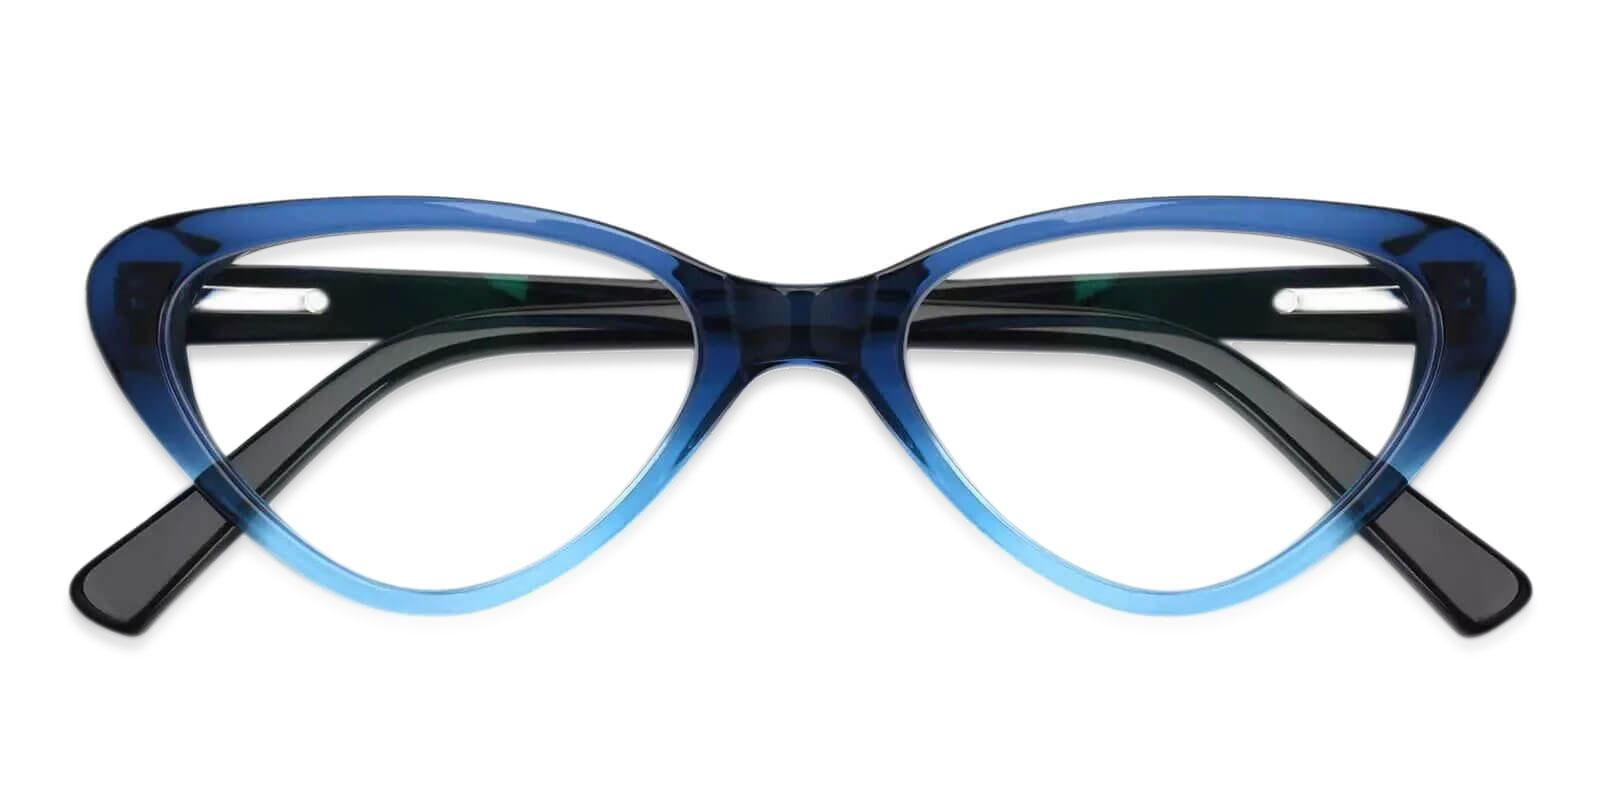 Selina Blue Acetate Eyeglasses , SpringHinges , UniversalBridgeFit Frames from ABBE Glasses